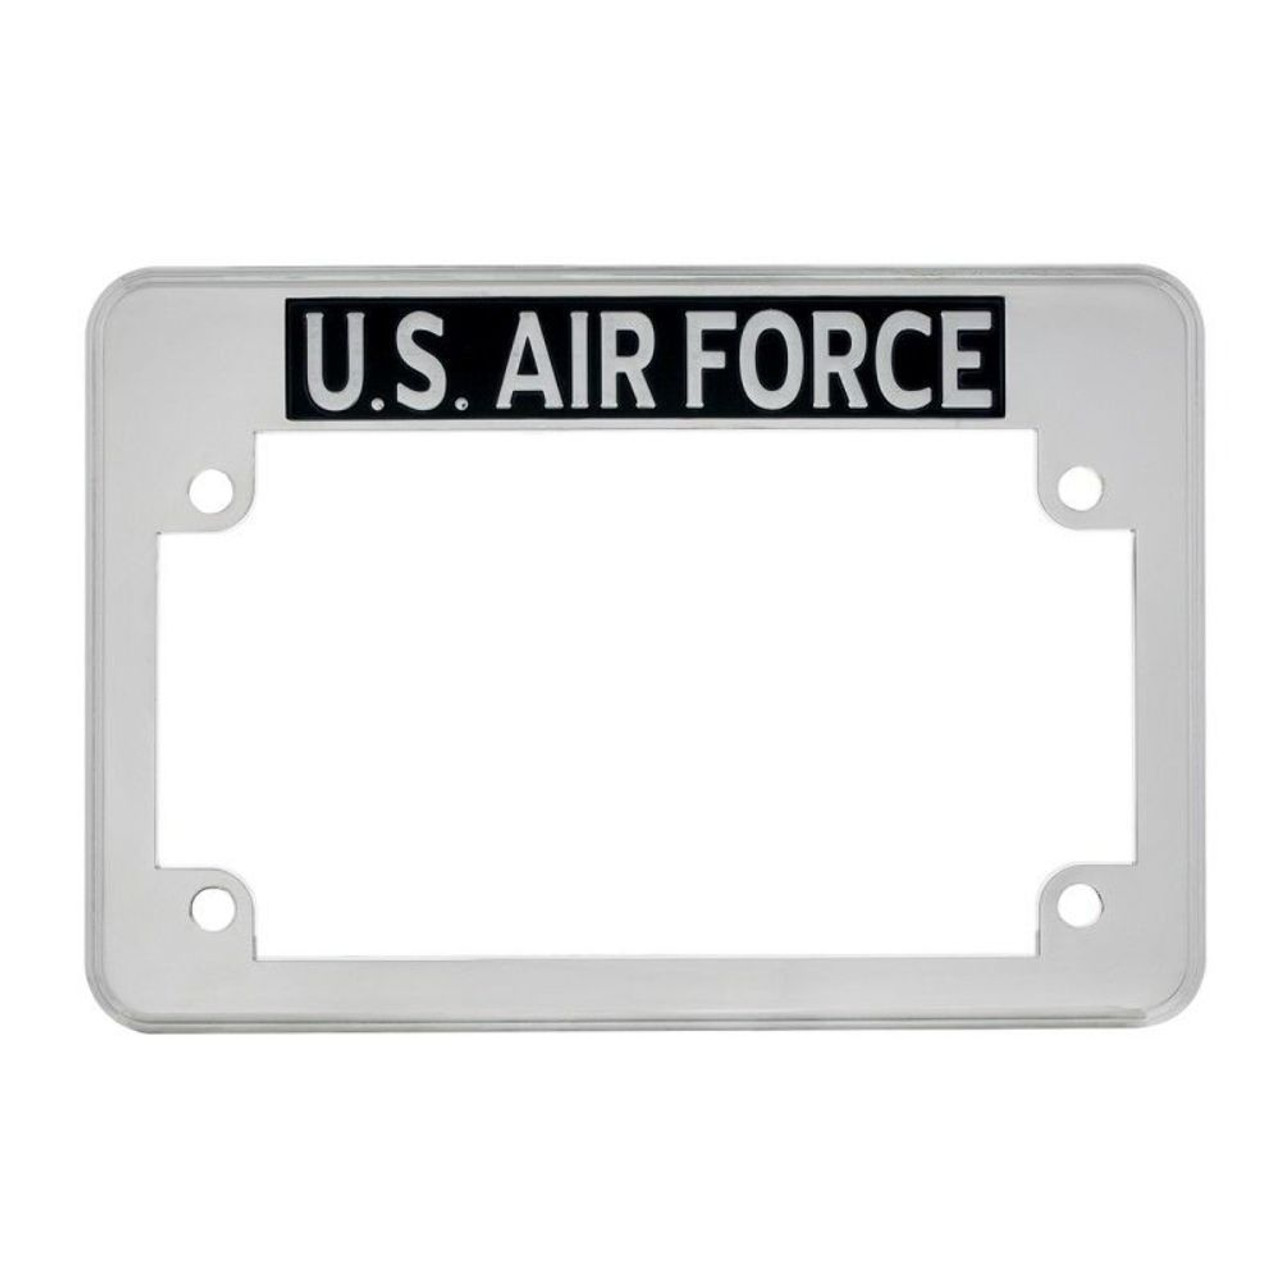 U.S. Air Force Motorcycle License Plate Frame - Fits HARLEY CHIPPER TRIUMPH MORE